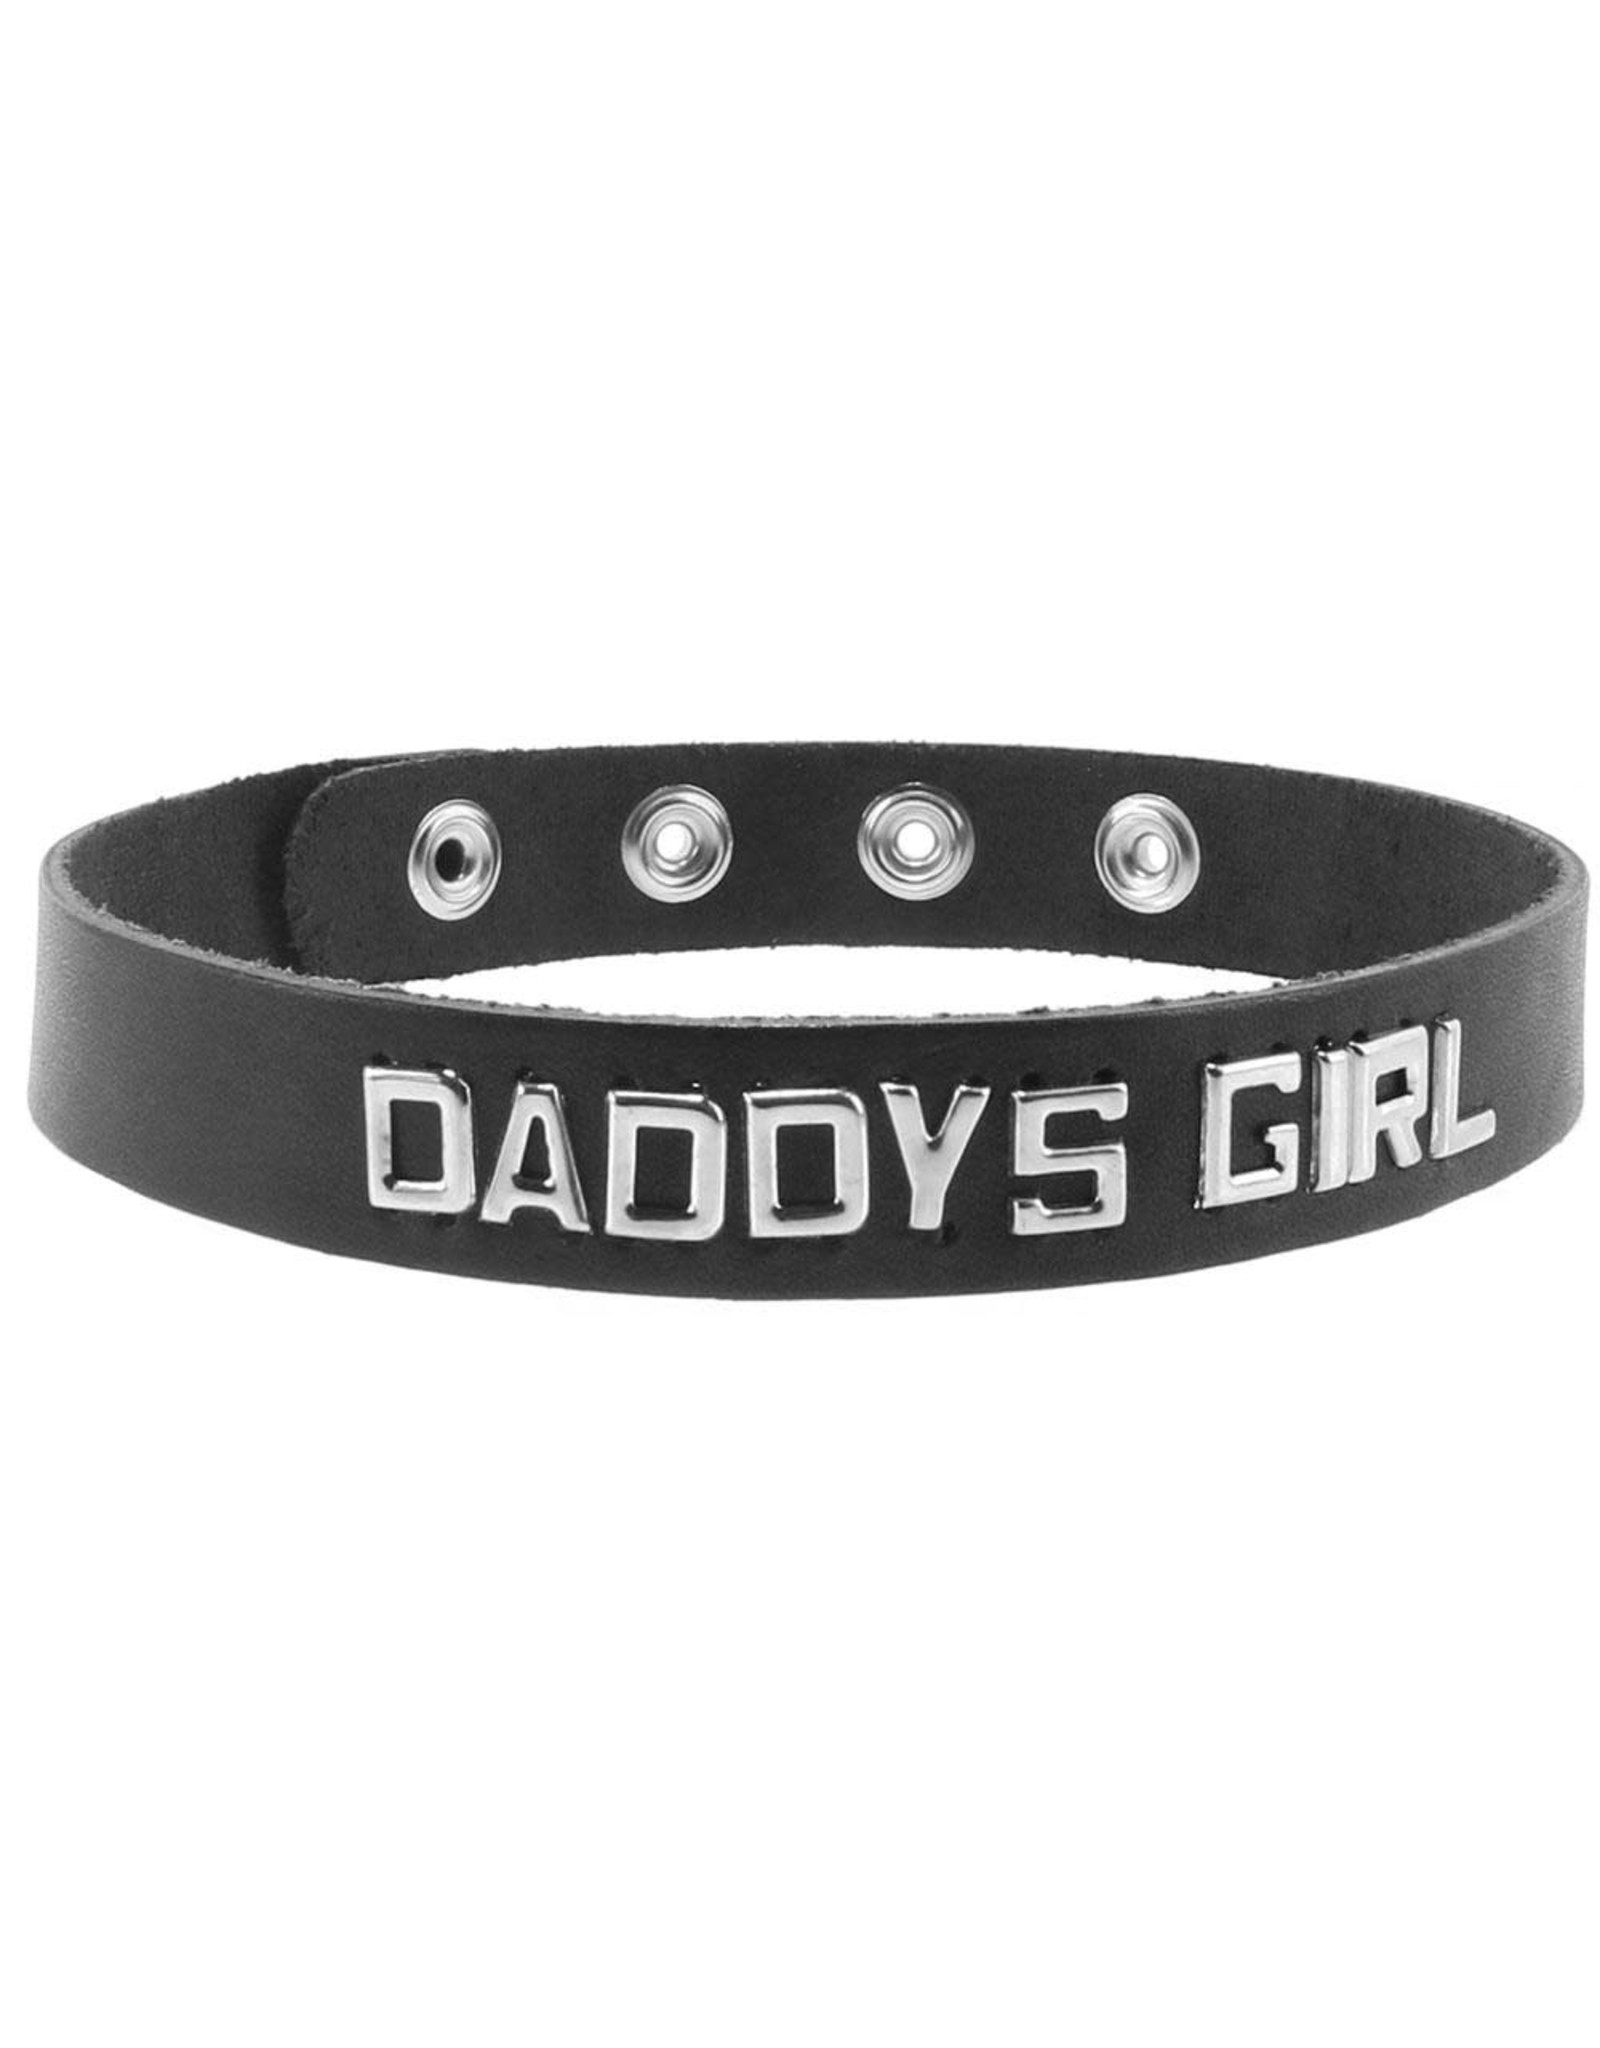 Spartacus Daddy's Girl Leather Word Band Collar